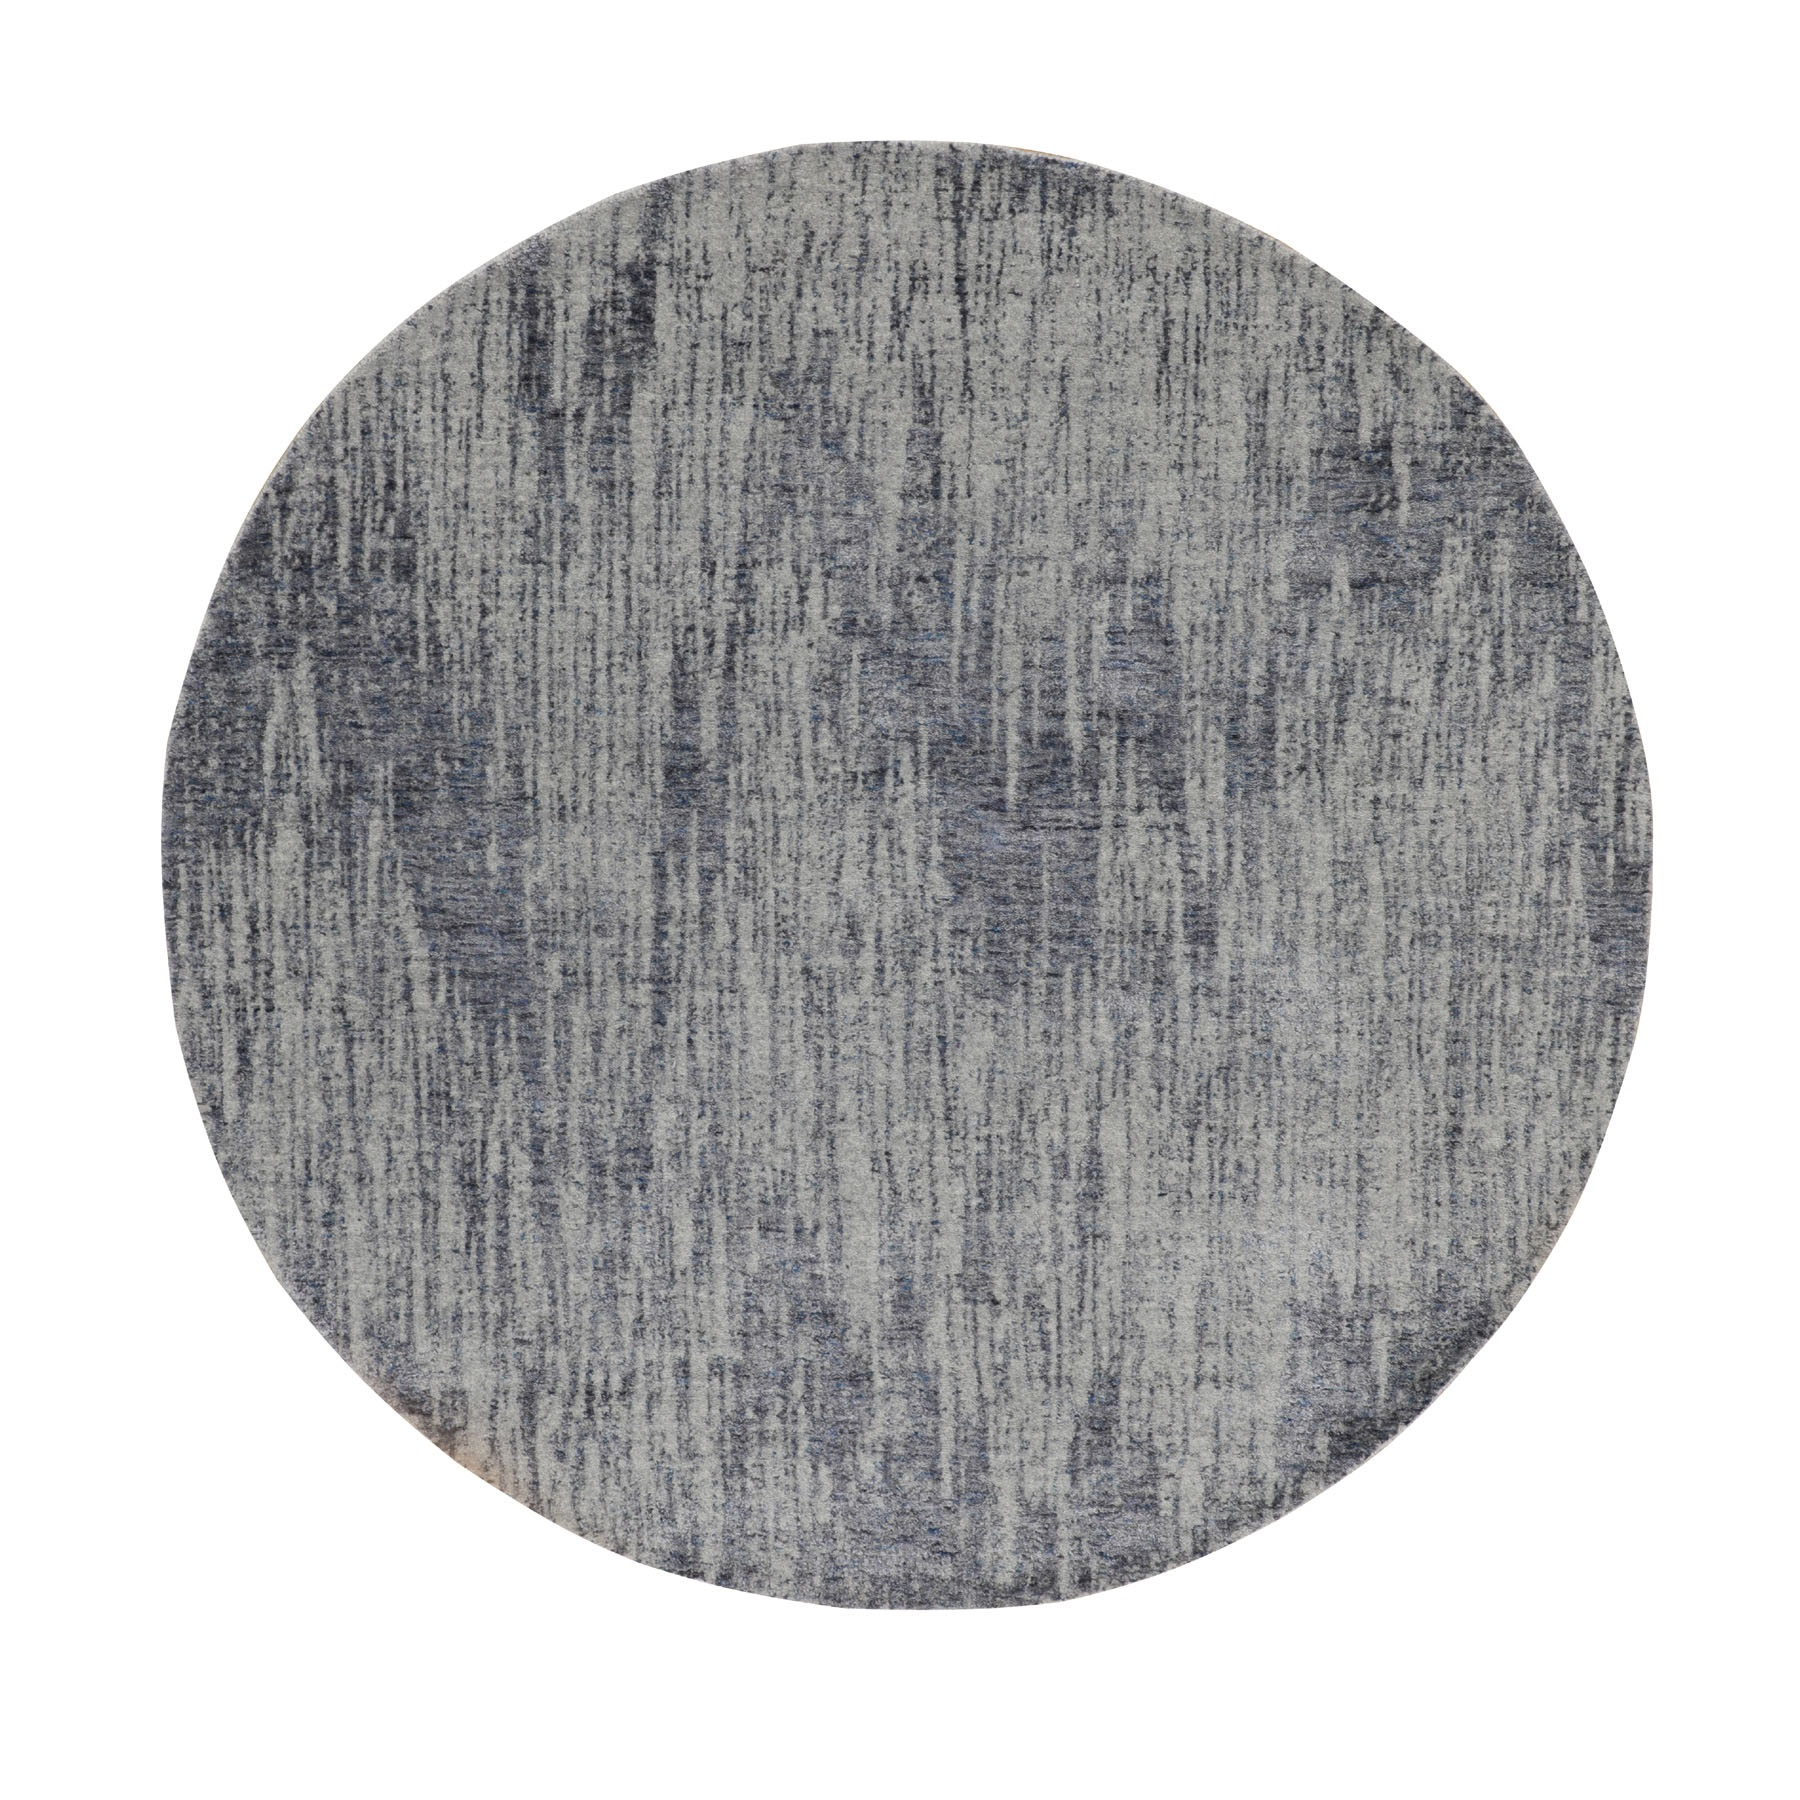 Mid Century Modern Collection Hand Loomed Grey Rug No: 1116248